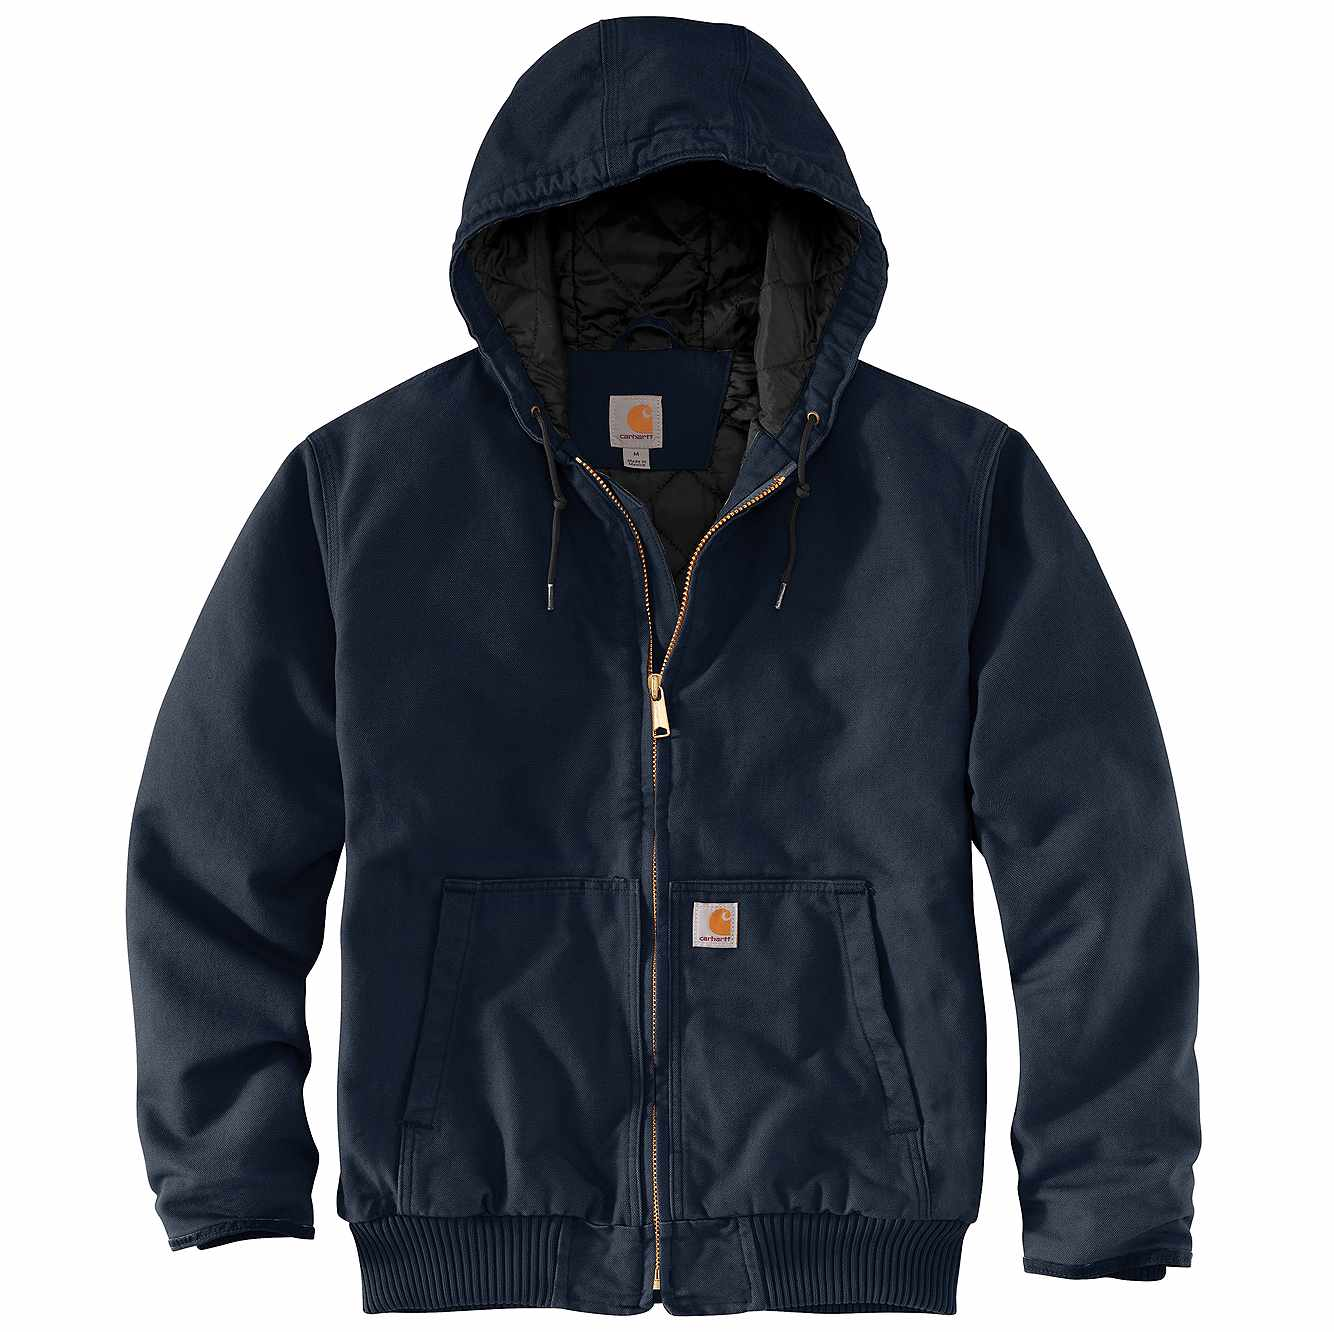 Picture of Washed Duck Insulated Active Jac in Navy